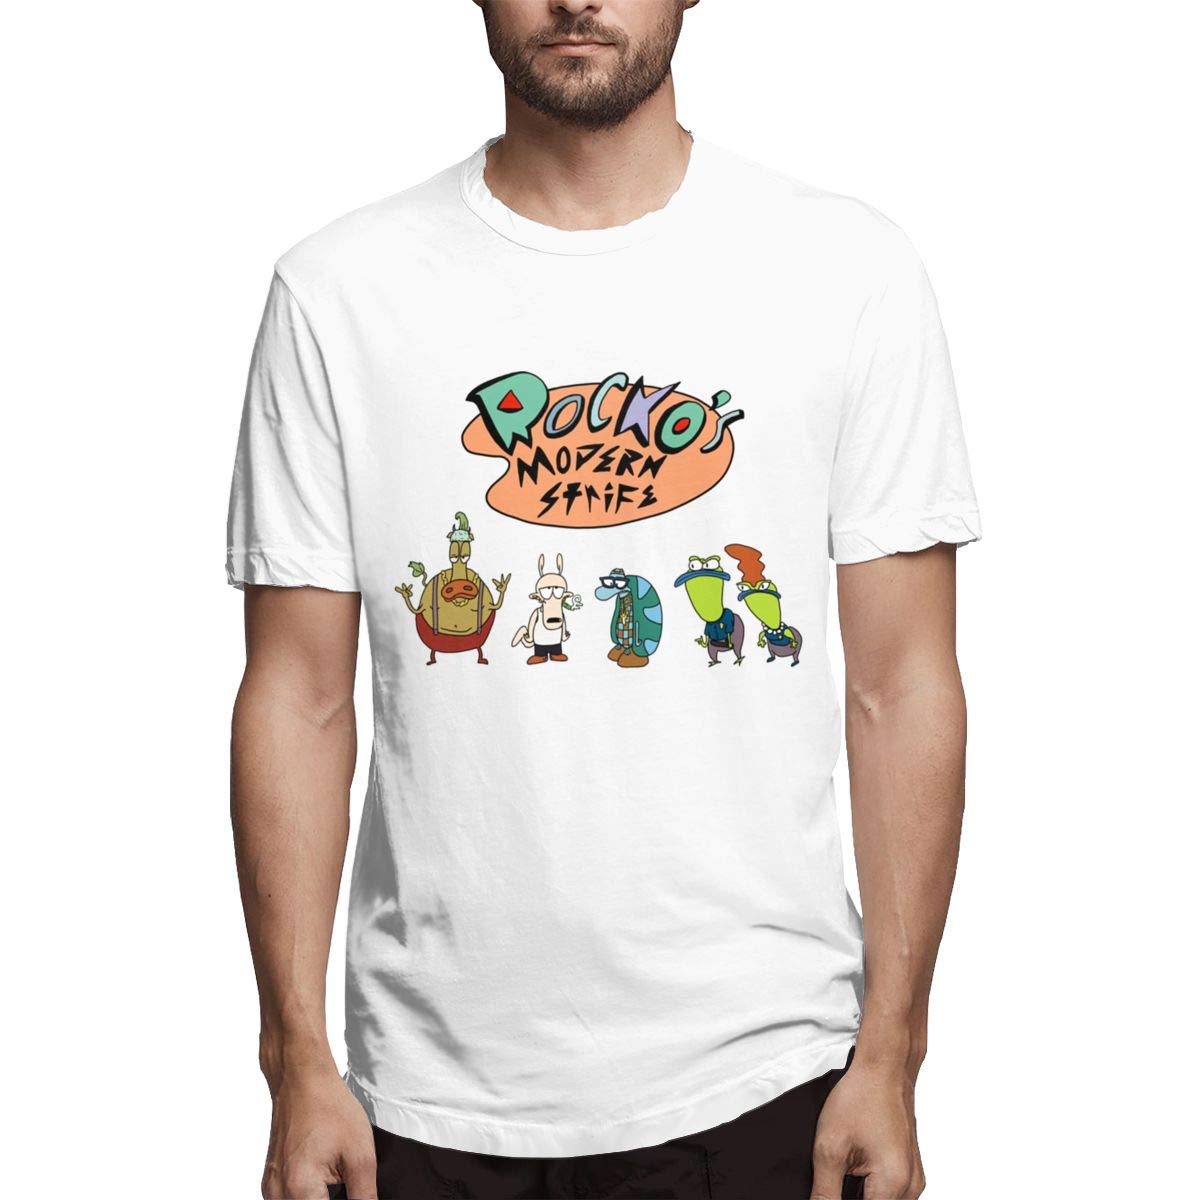 Rocko's Modern Life Funny Crew Neck Short Sleeve For T Shirt